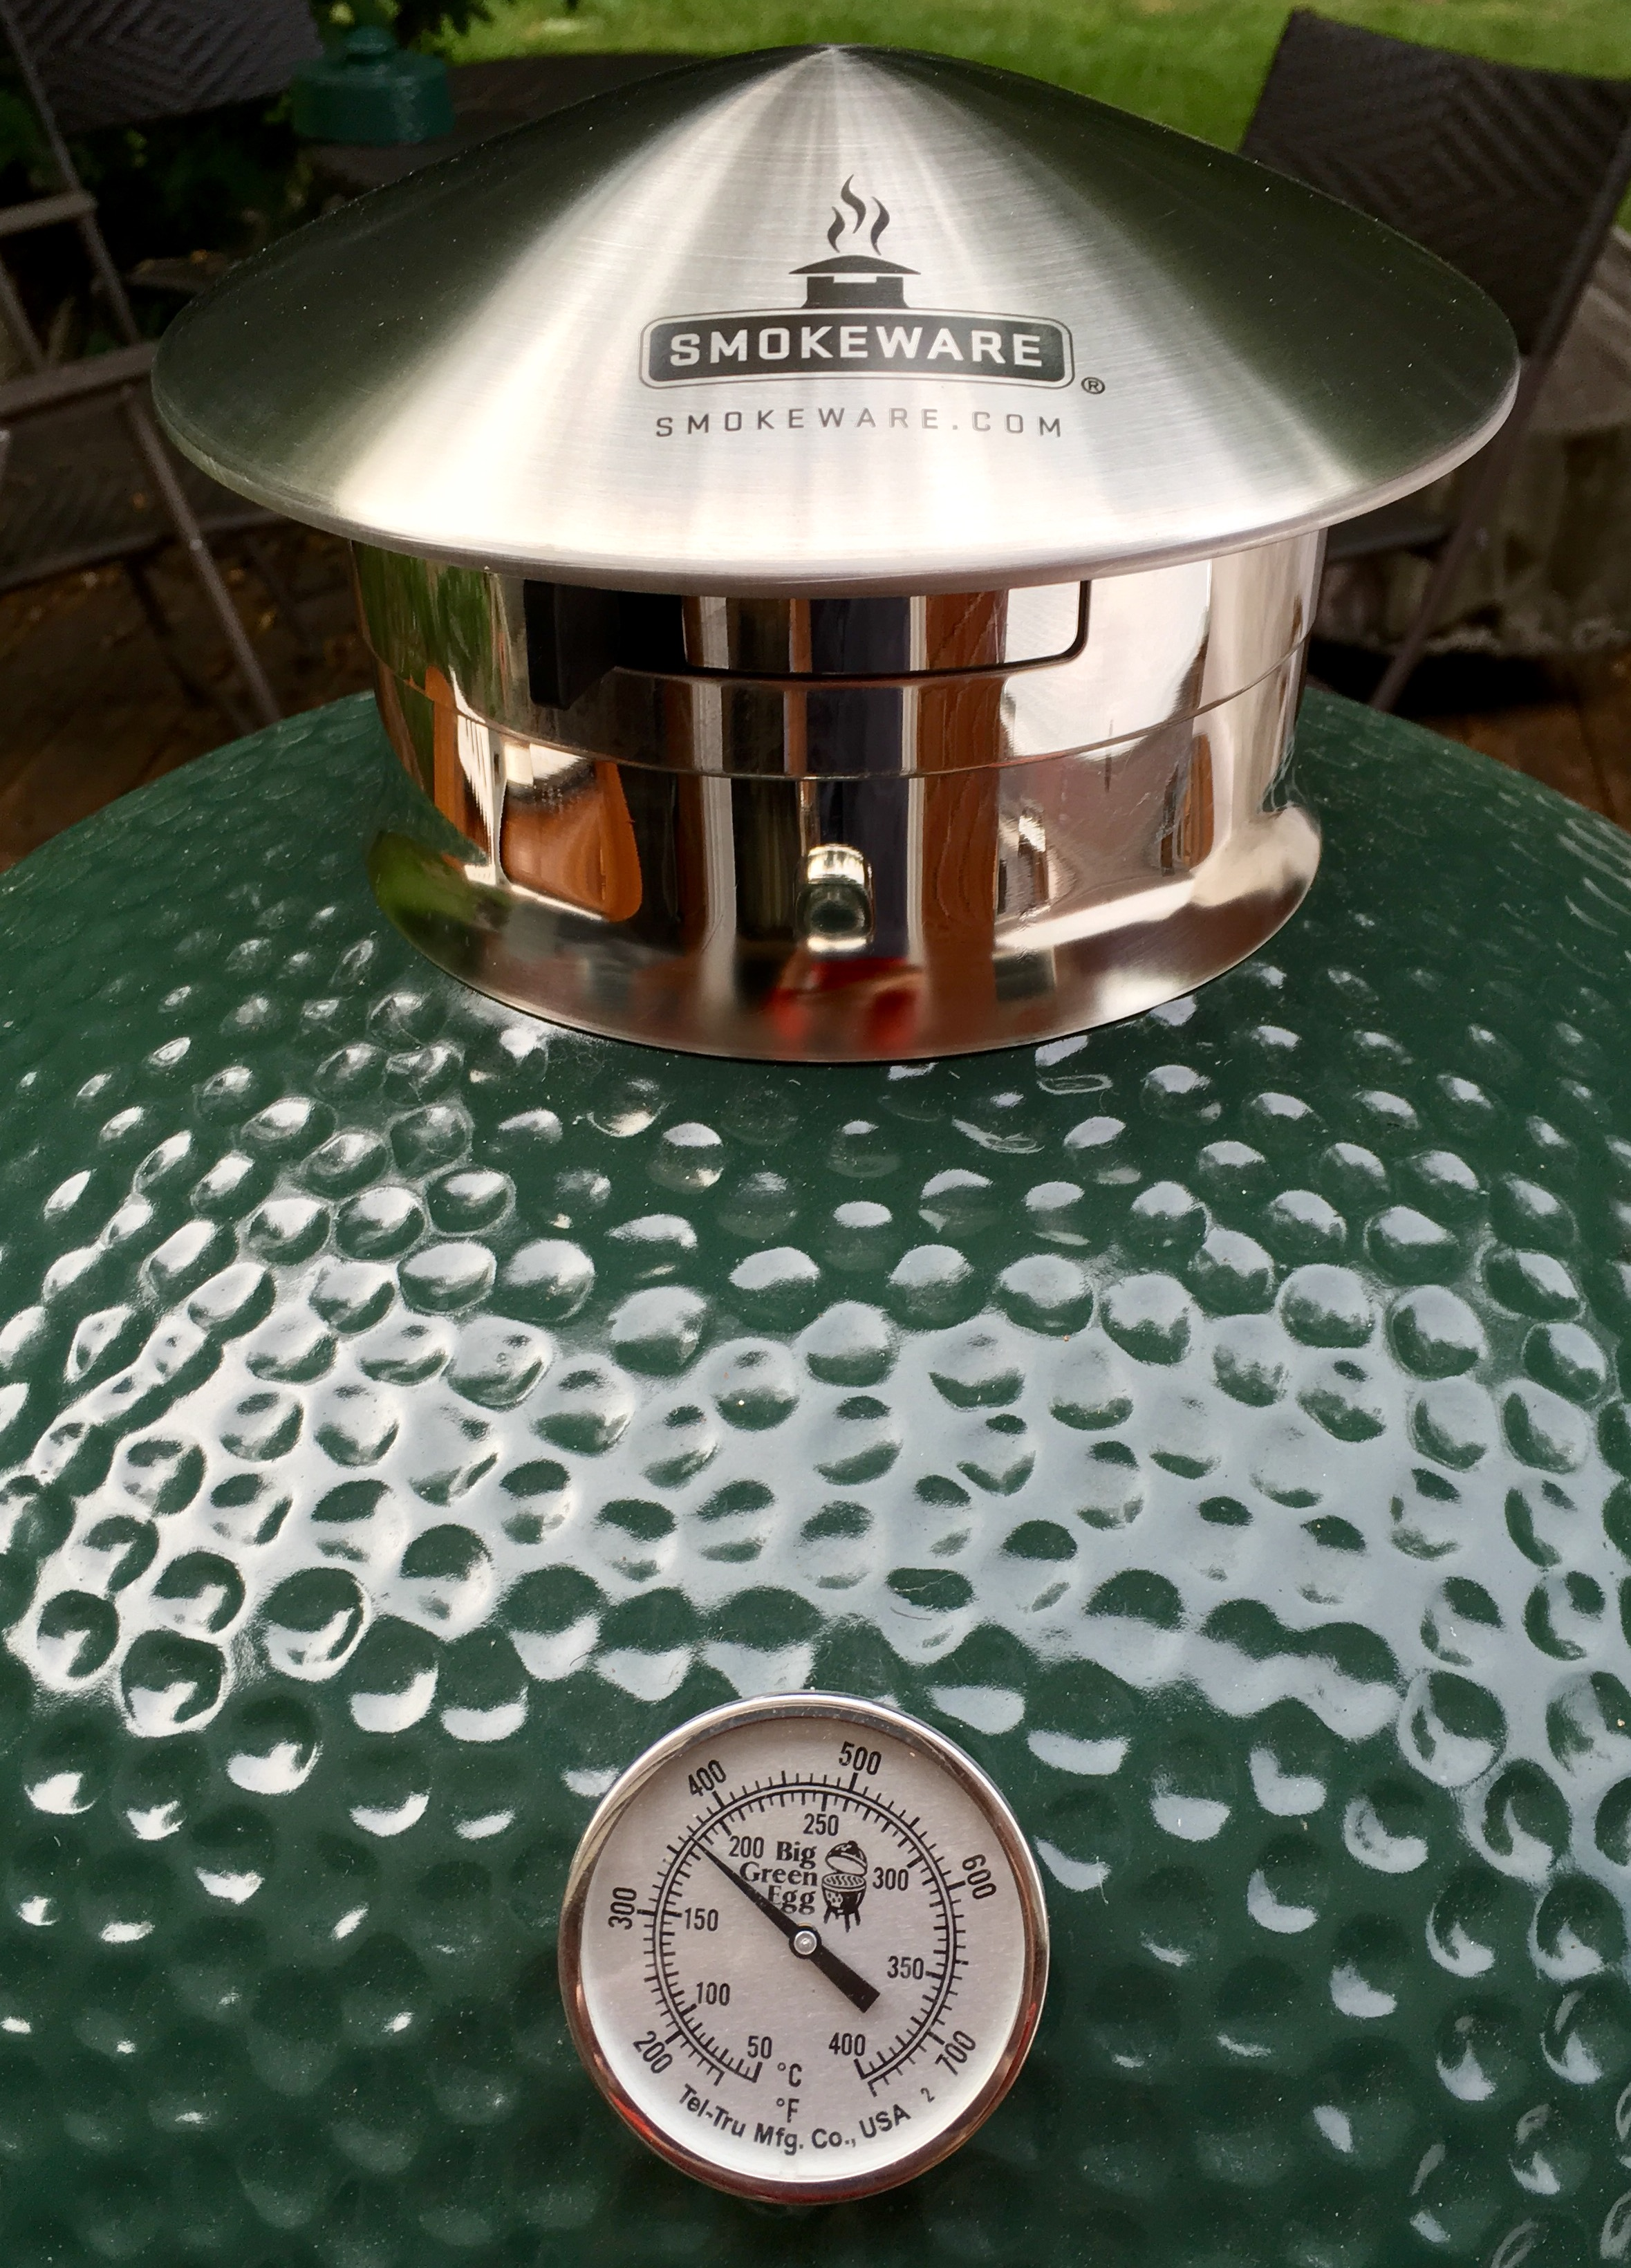 Big Green Egg is a great help for super accurate temperature control #653D27